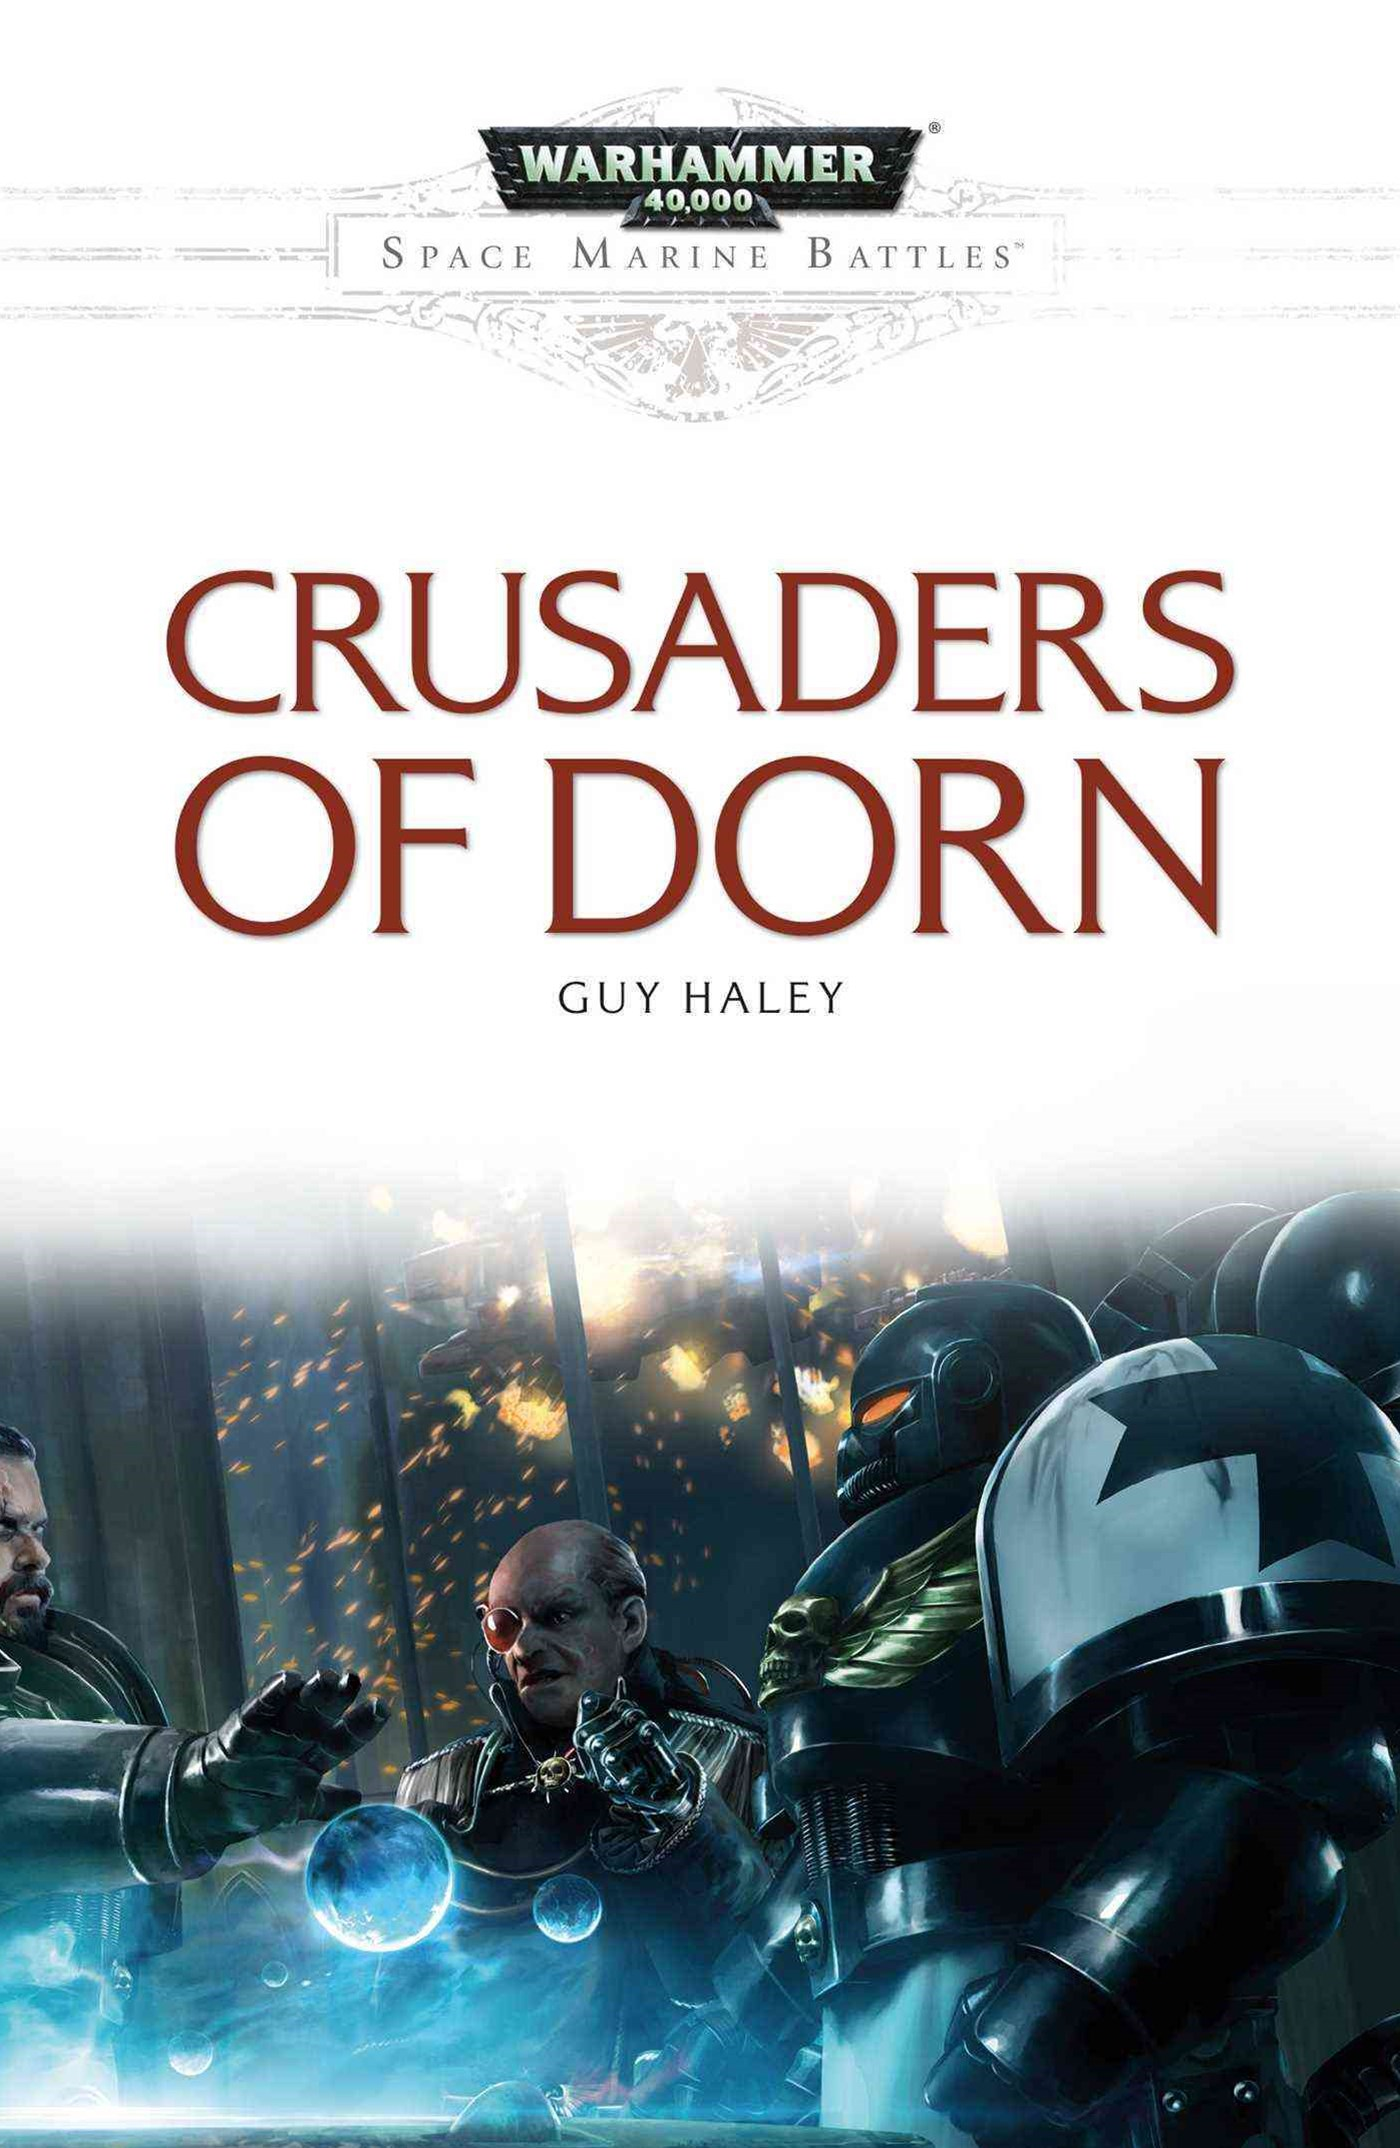 Crusaders of Dorn